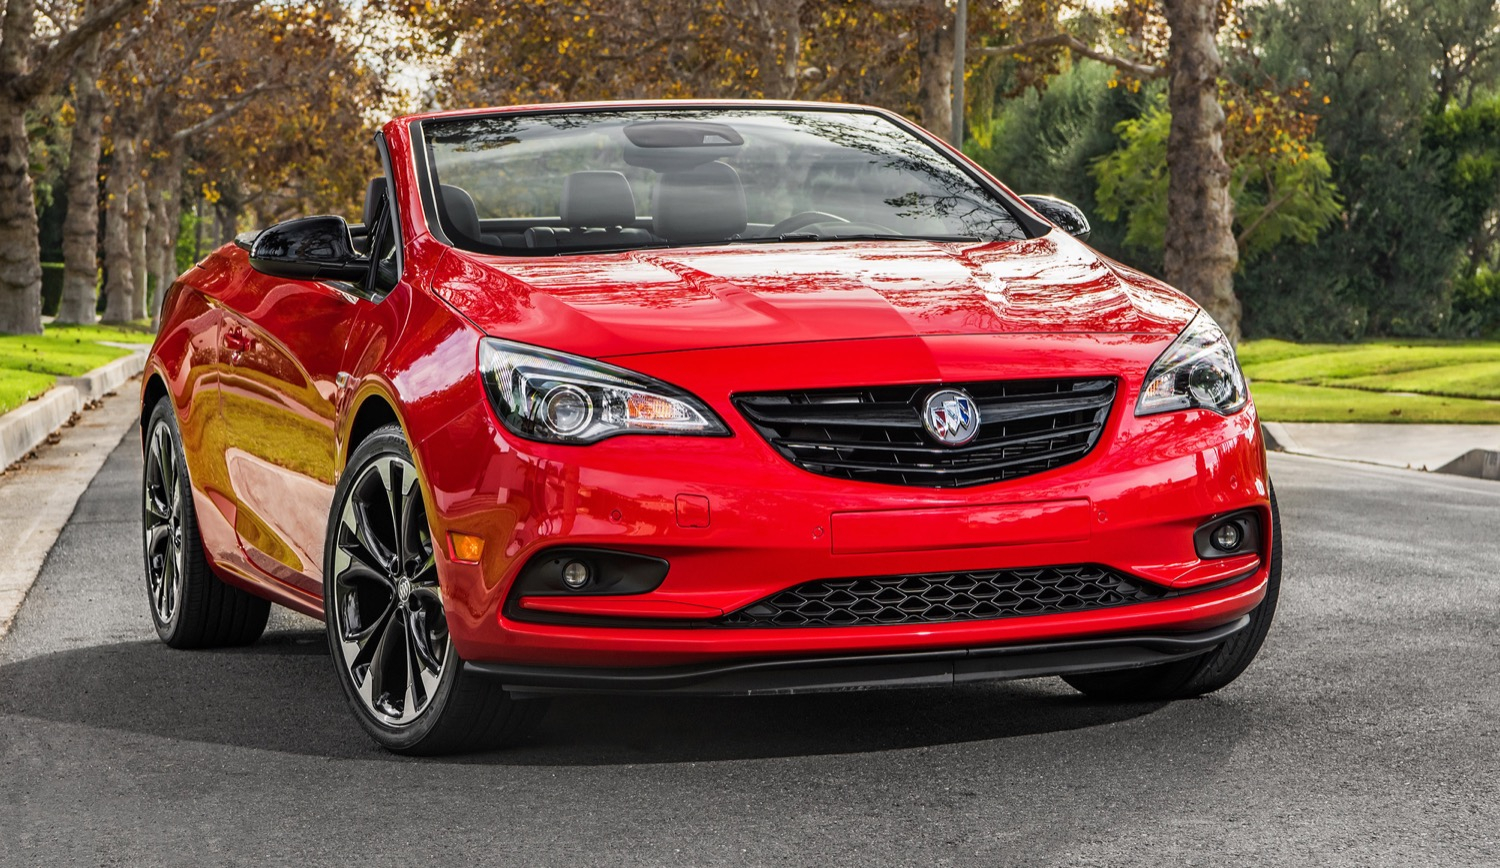 Buick Cascada Discount Cuts Price 16 Percent September 2019 2021 Buick Cascada Lease, Trim Levels, Manual